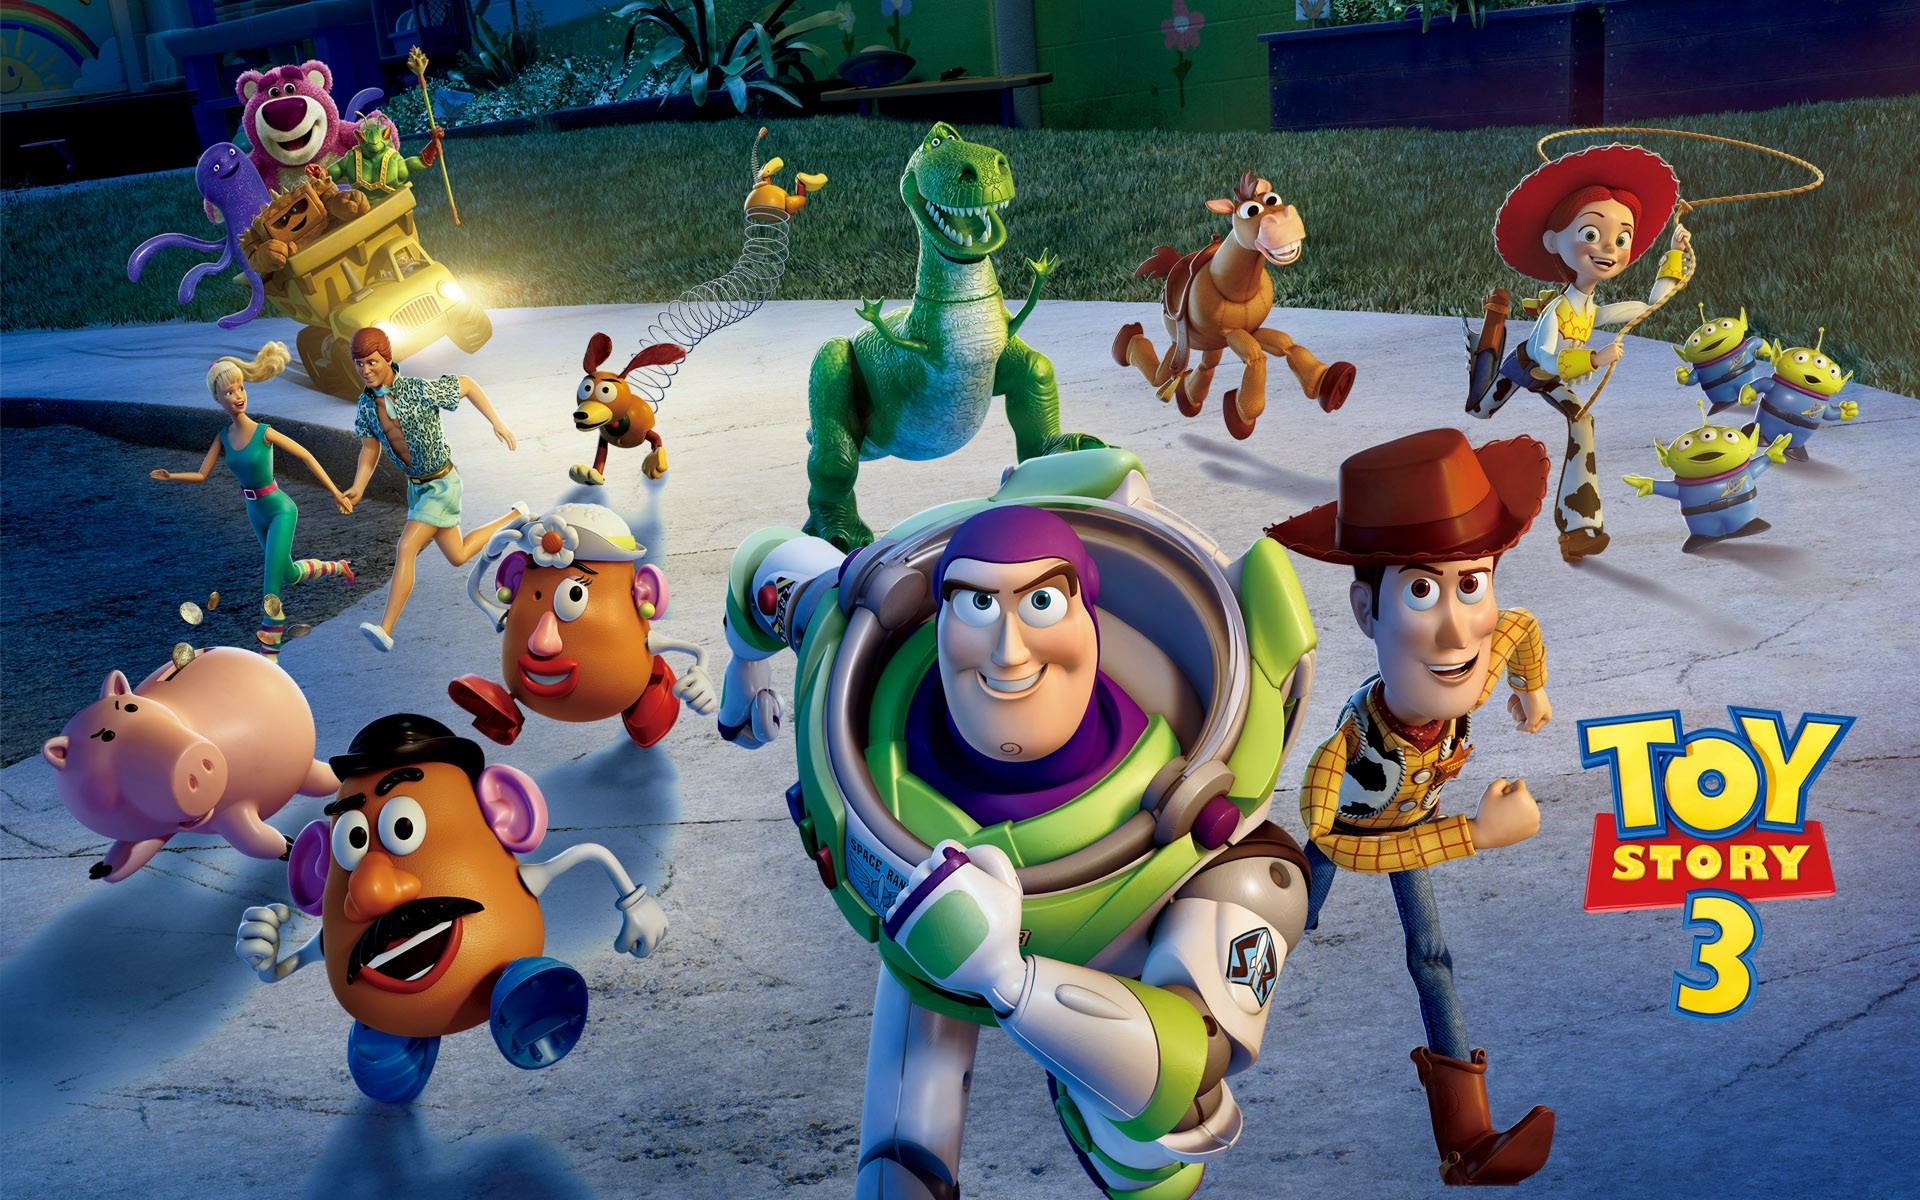 1920x1200  Toy Story 3. How to set wallpaper on your desktop? Click the  download link from above and set the wallpaper on the desktop from your OS.